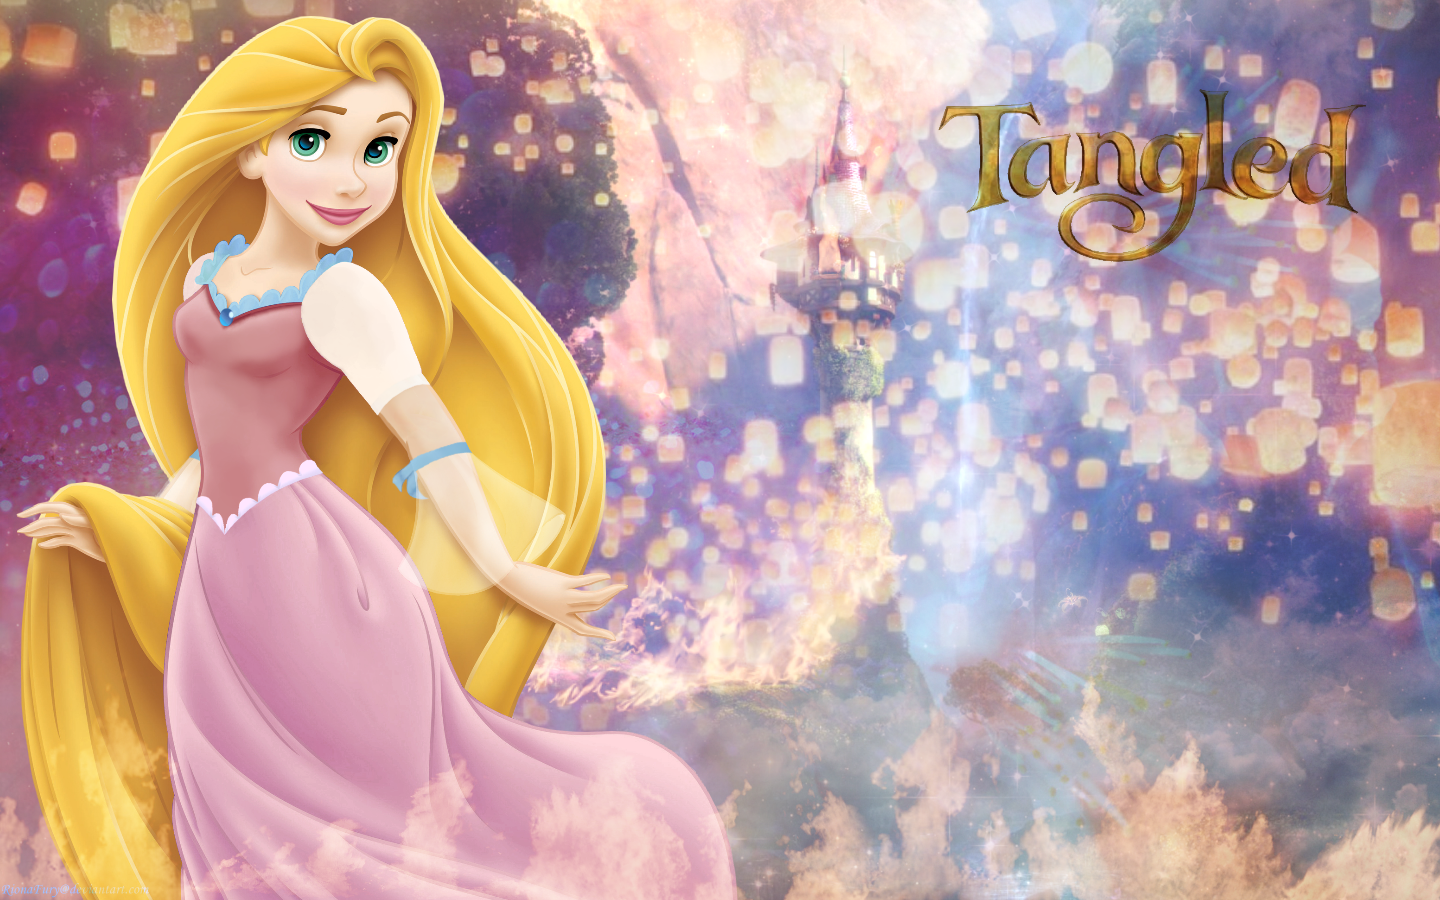 Tangled images Rapunzel's Tower HD wallpaper and background photos ...